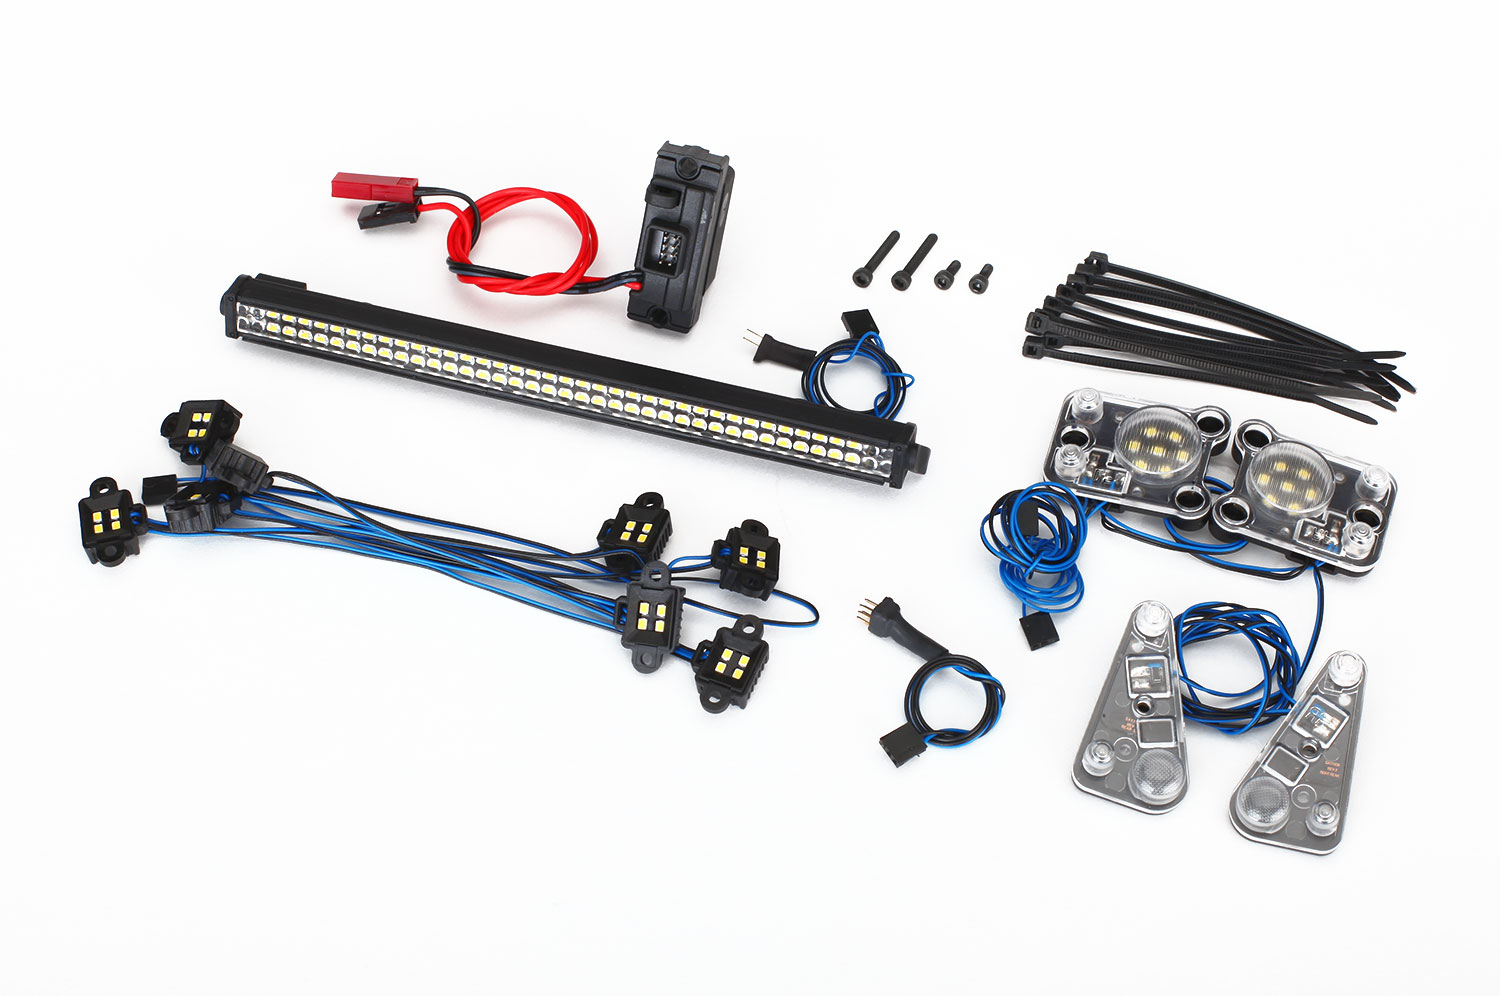 LED light set, complete (contains rock light kit, LED lightbar (Rigid®), LED headlight/tail light kit, power supply, and 3-in-1 wire harness) (fits #8011 body)